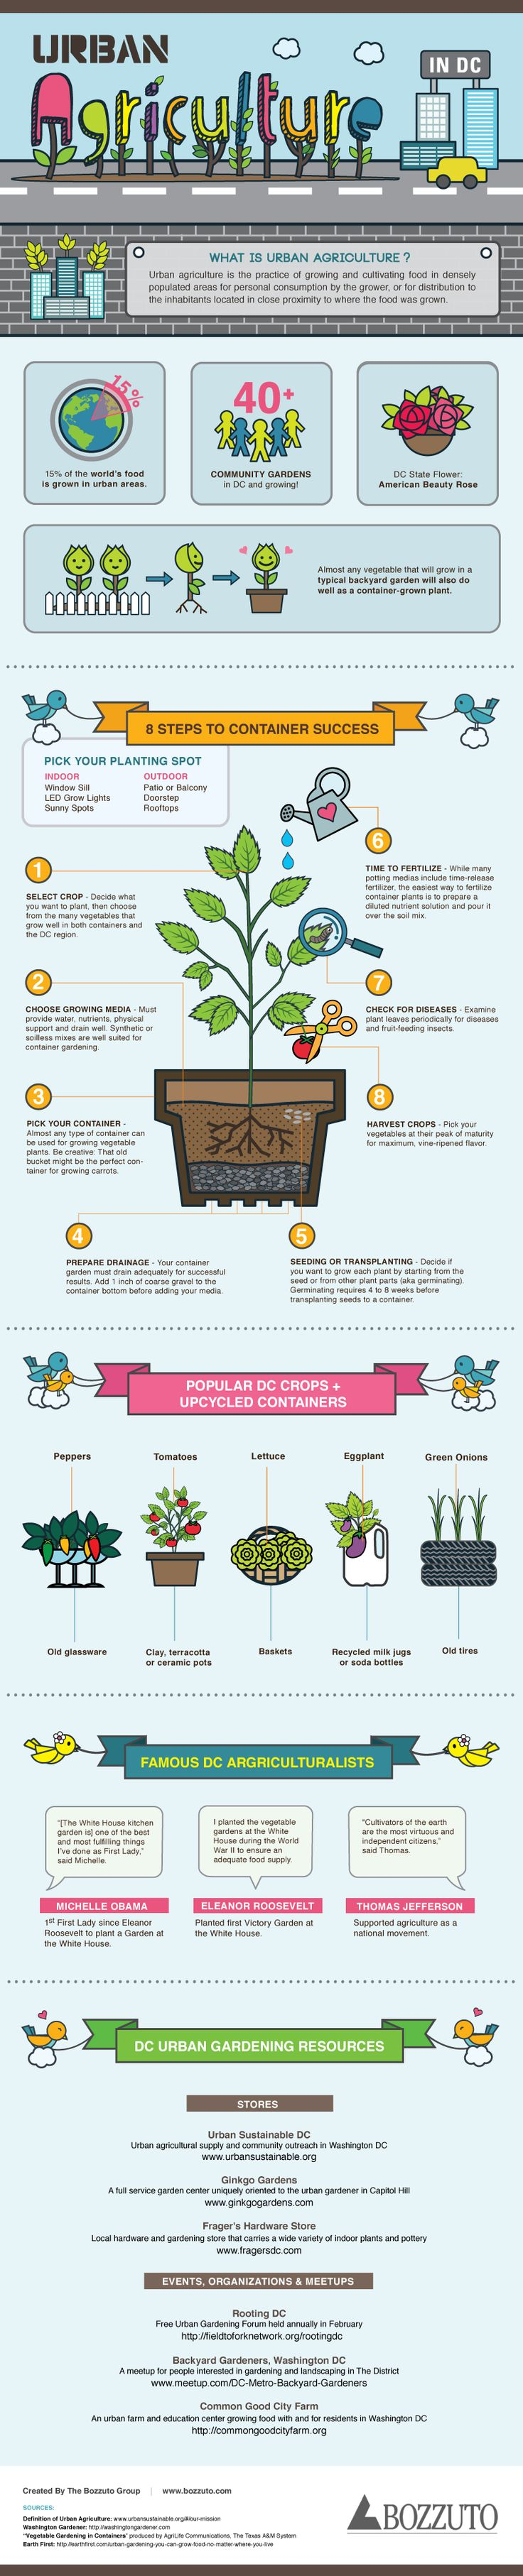 This Urban Agriculture in DC Infographic shares some facts of the movements (lead in part by Michelle Obama) and getting started tips for your own balcony or rooftop garden.